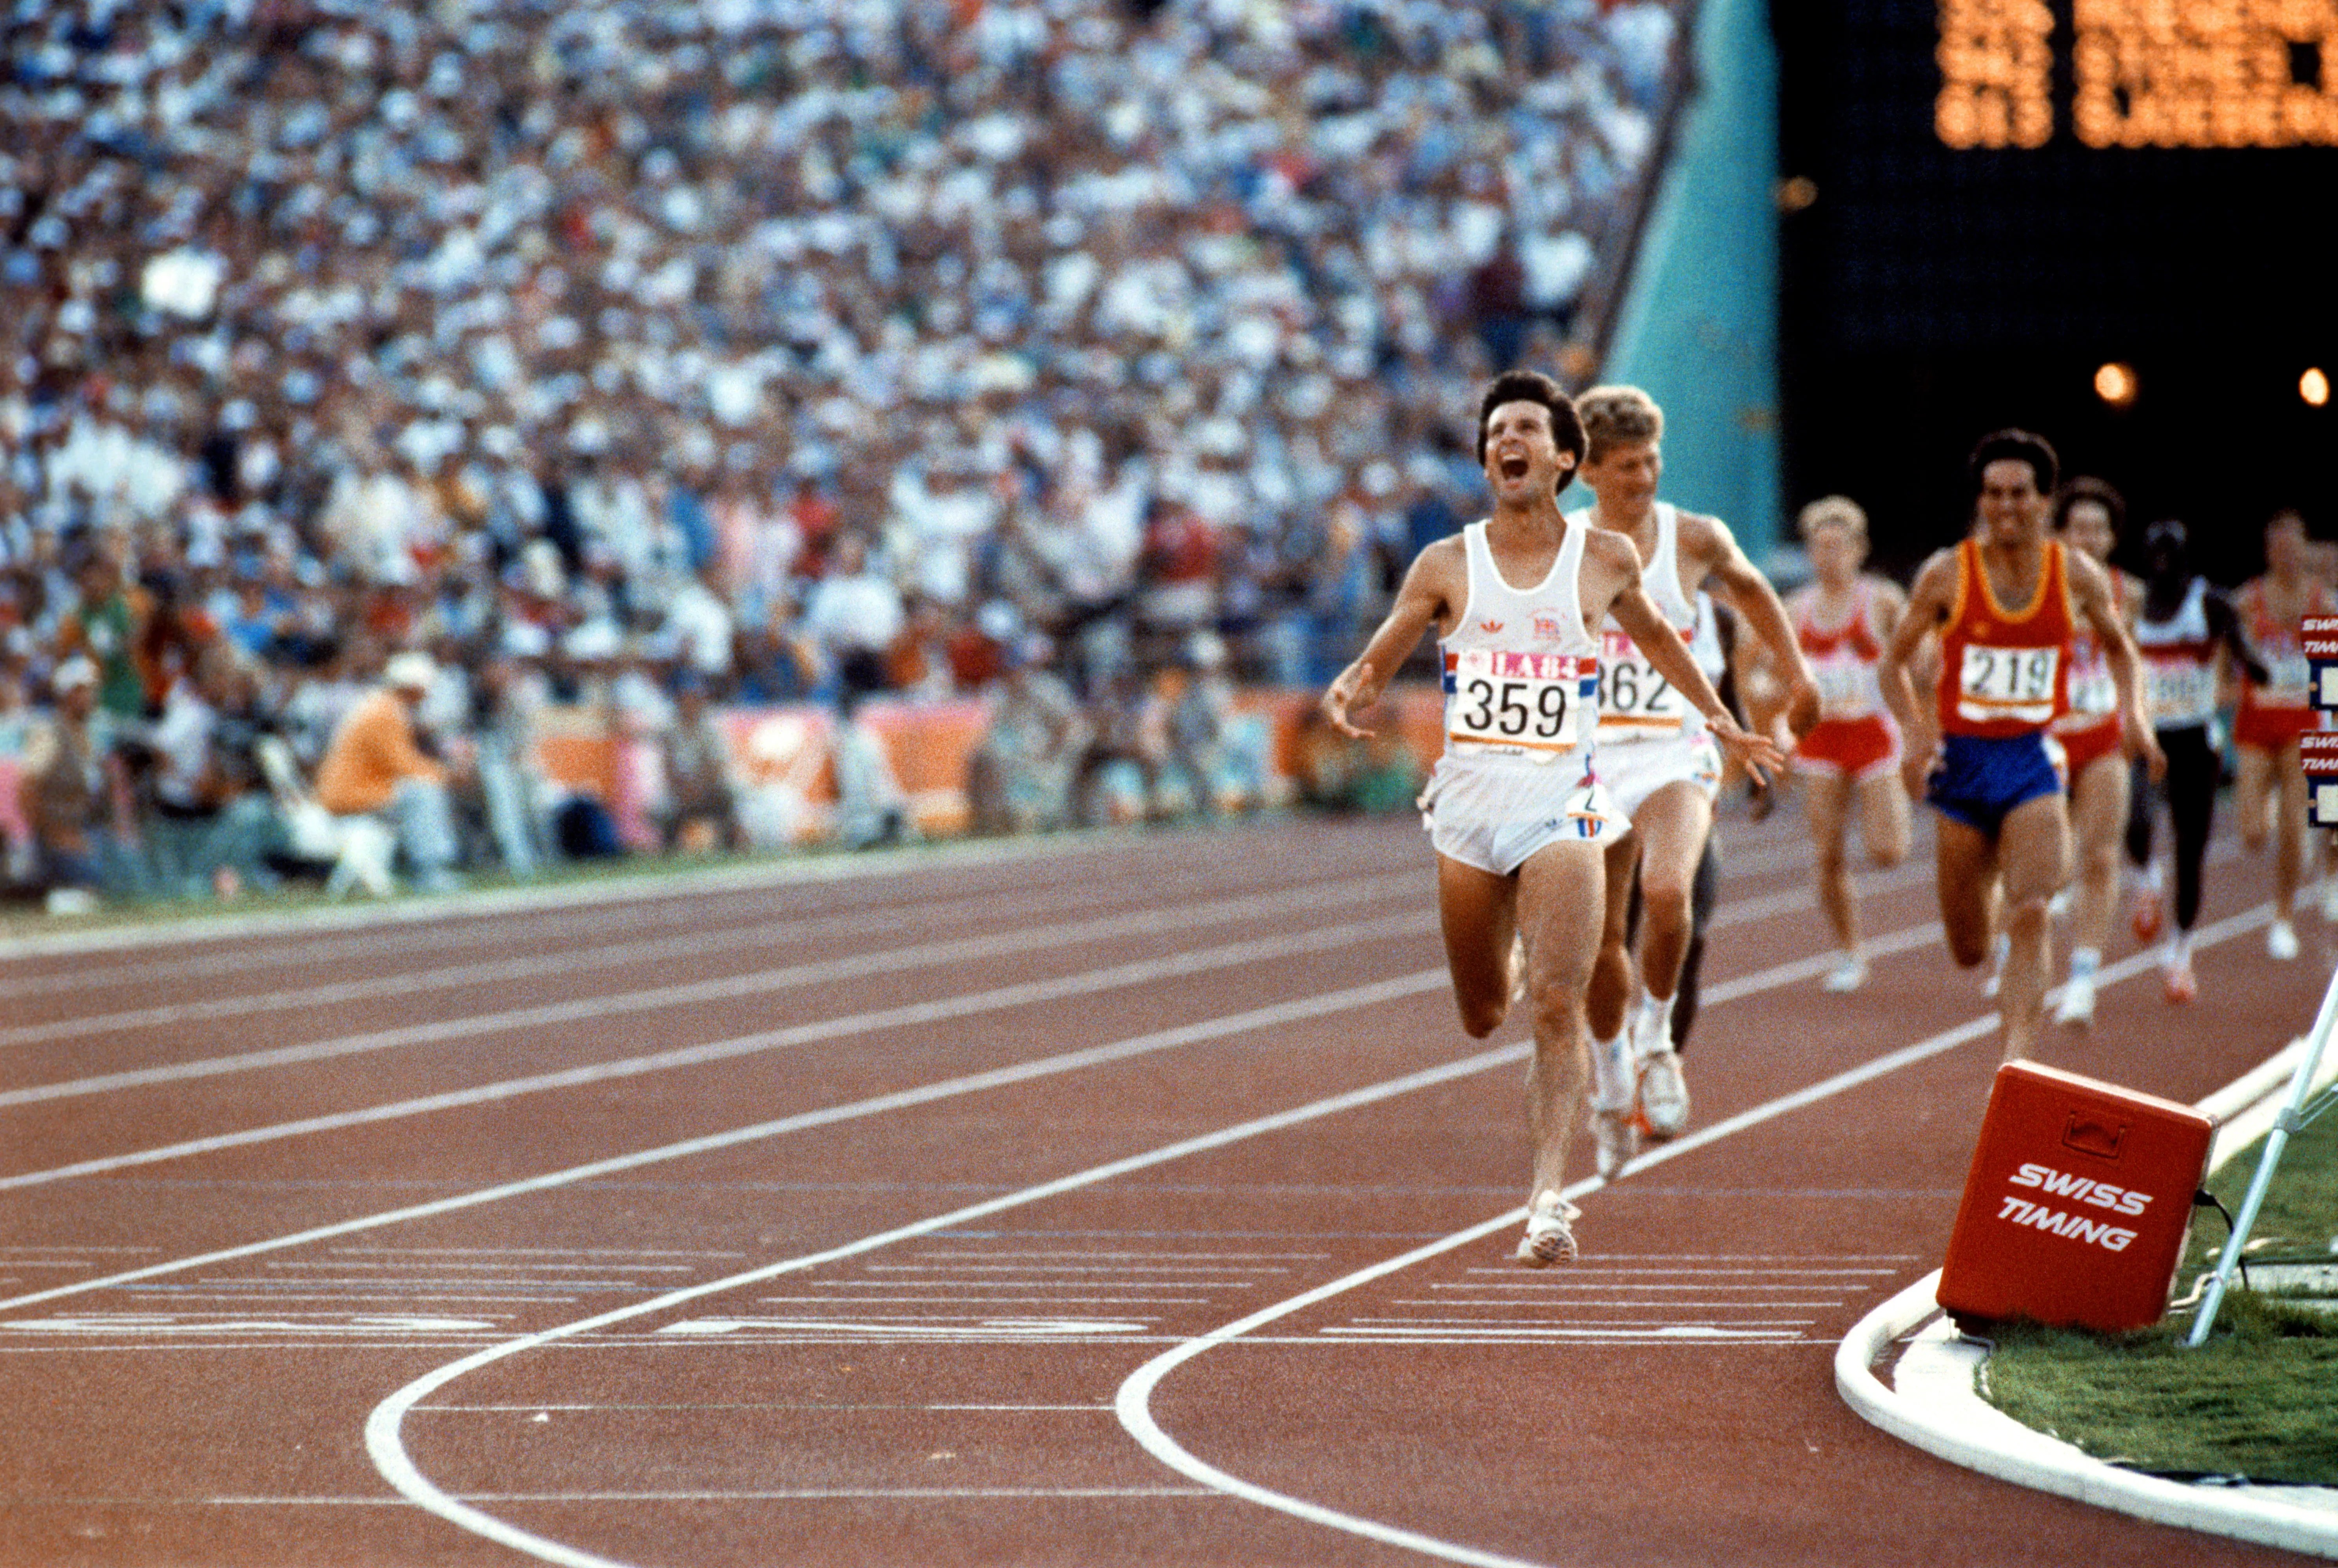 Los Angeles, 1984: Great Britain's Seb Coe celebrates as he crosses the line to win gold in the 1500m from teammate Steve Cram and Spain's Jose Abascal. In response to the US' boycott of Moscow in 1980,14 Eastern Bloc countries and allies of the Soviet Union refused to attend the Los Angeles games in retaliation.